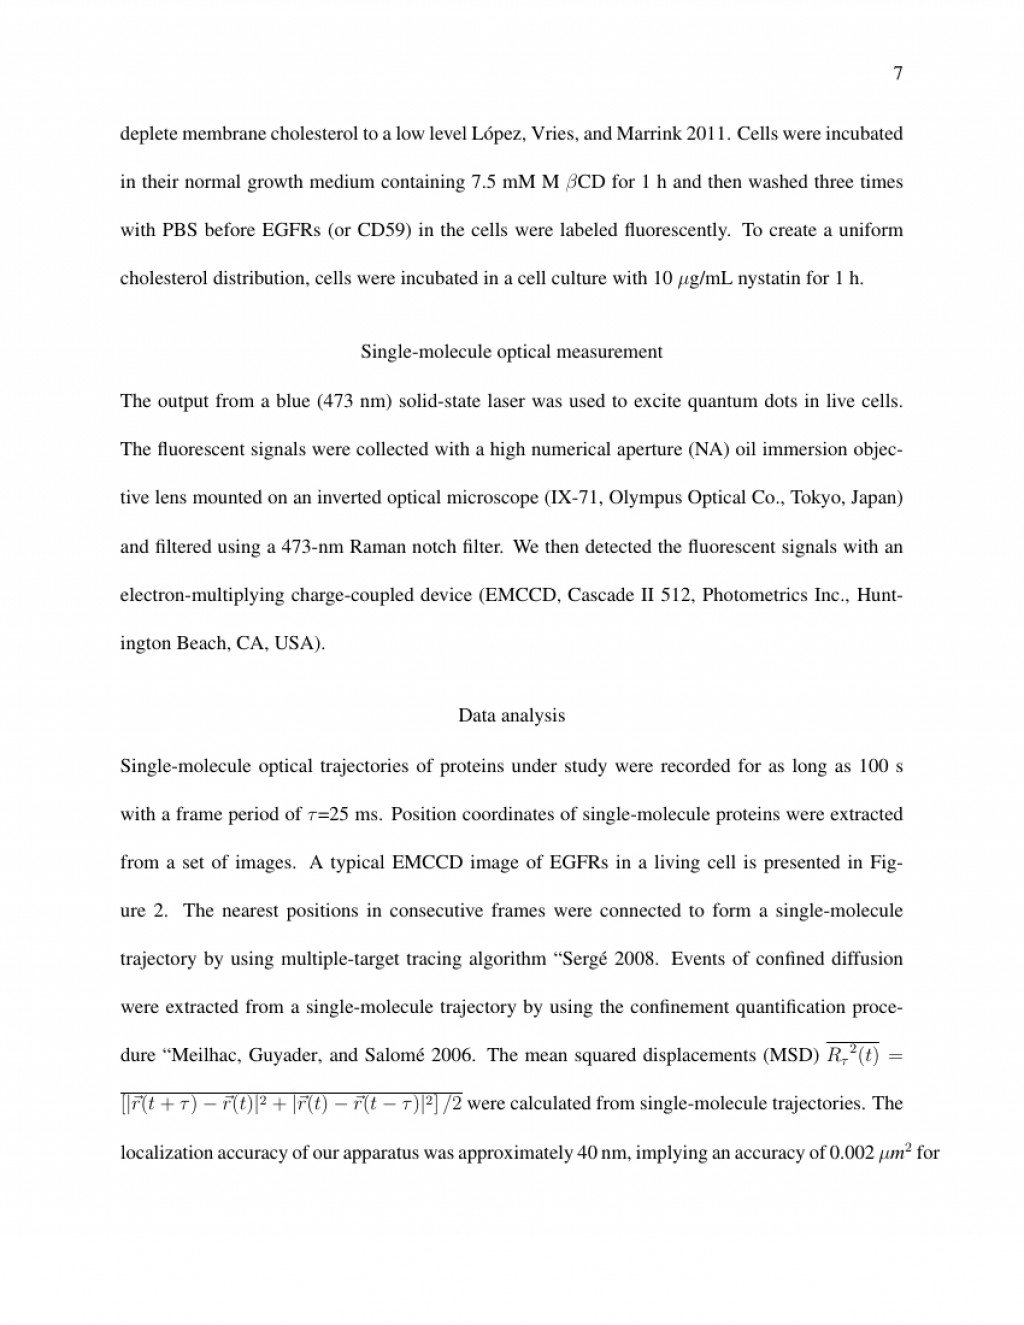 005 Article Research Paper Format Of Incredible The Ieee Example Sample Chapter 1 Large